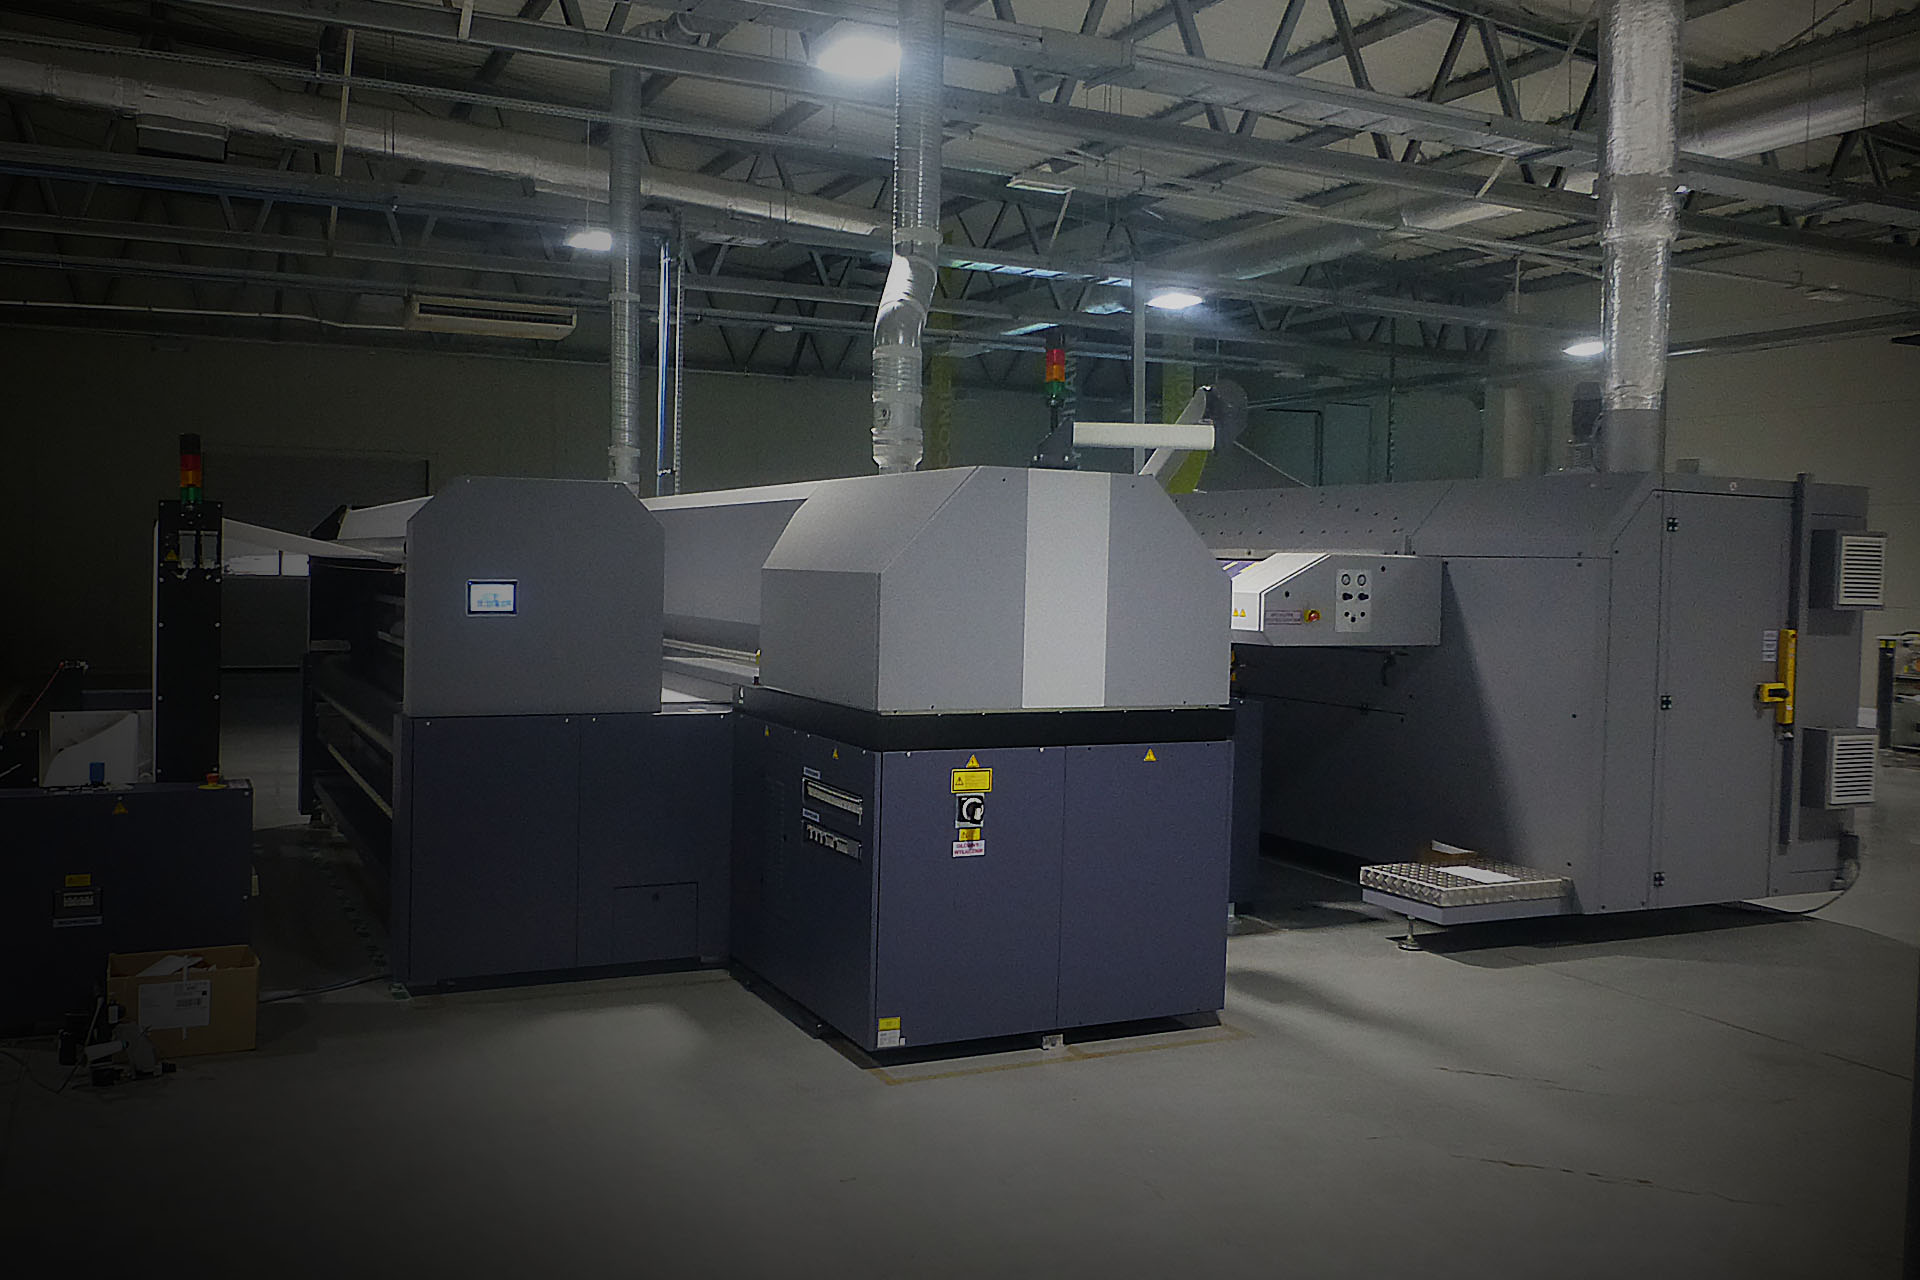 Faber Exposize Durst Printer